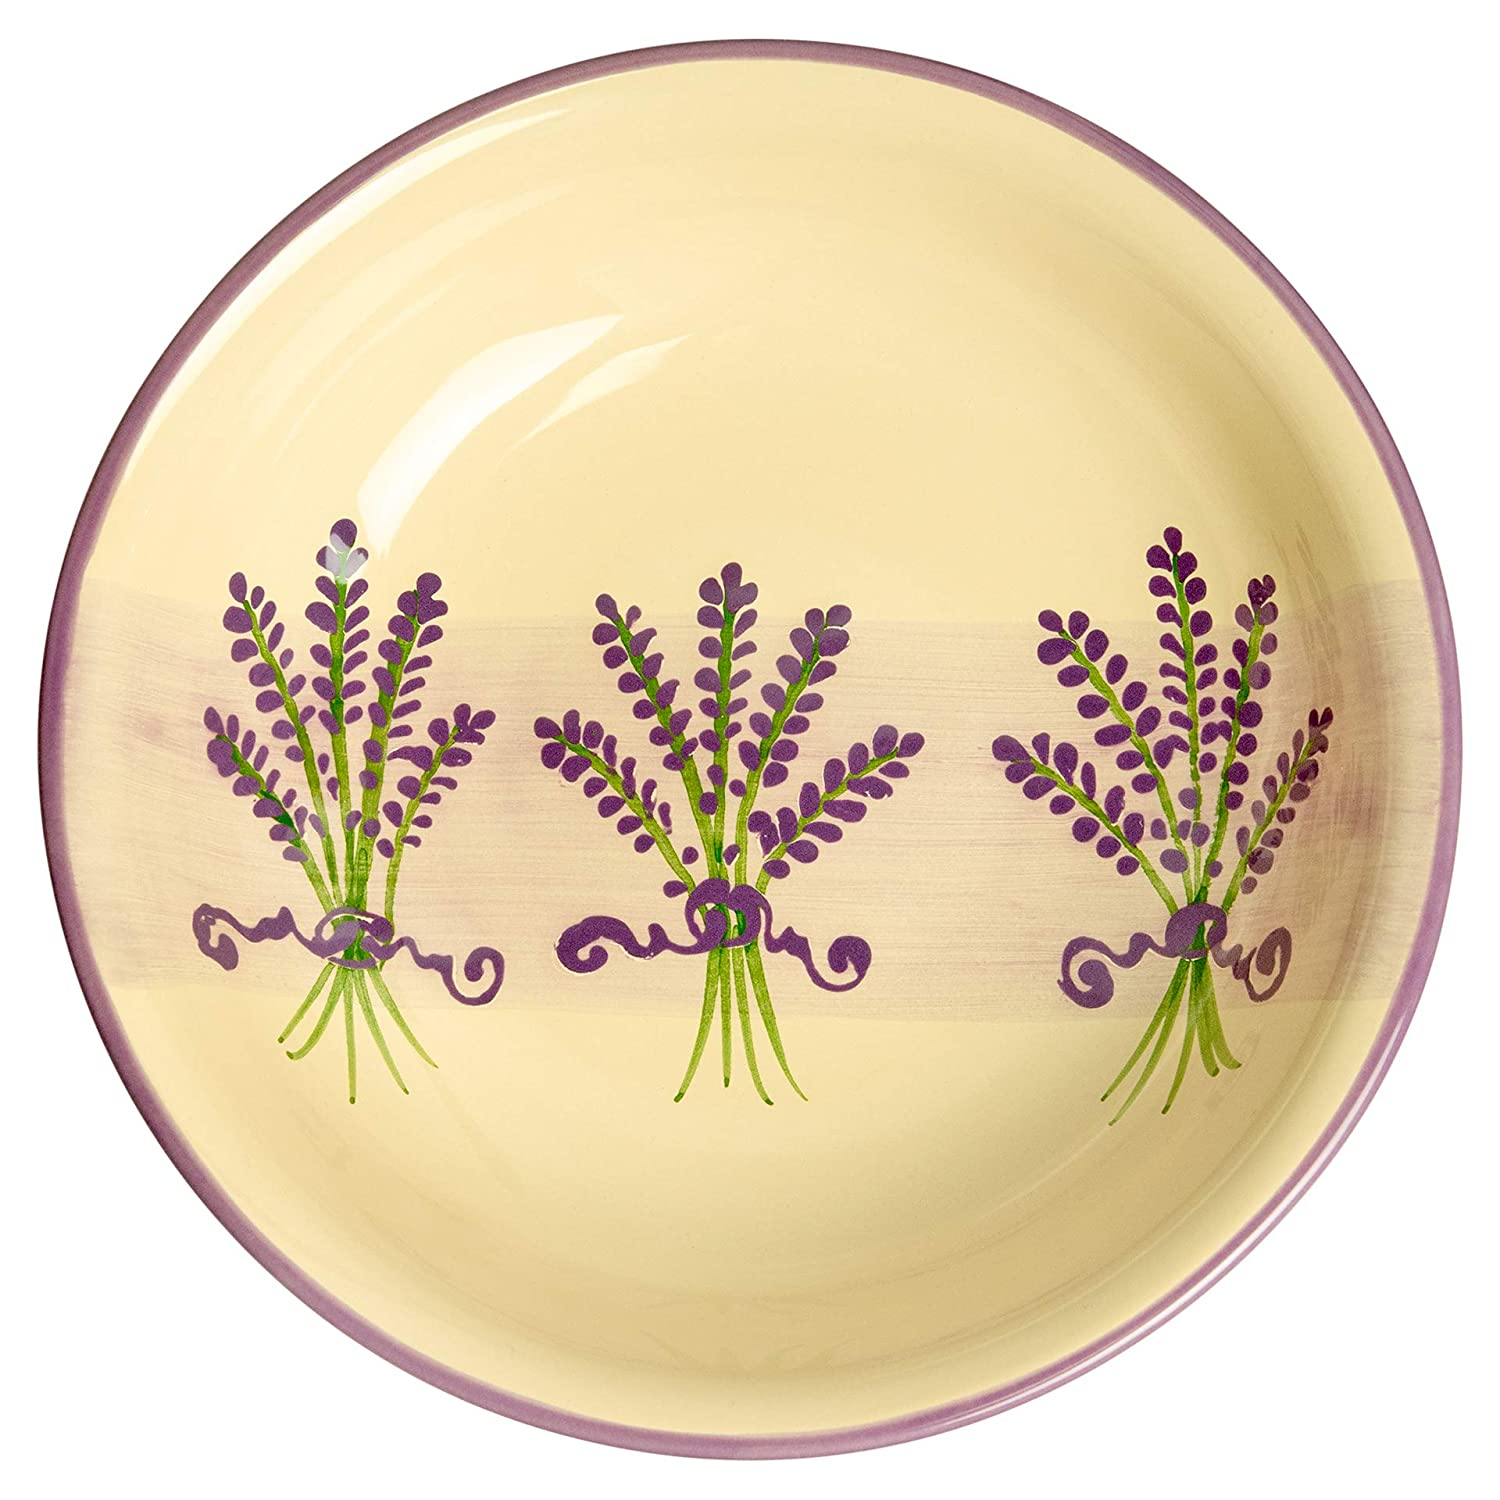 City to Cottage Lavender Pattern Purple And Cream | Handmade Hand Painted | Glazed Ceramic 7.3inch/18.5cm | 14oz/400ml Large Salad, Pasta, Fruit, Cereal, Soup Bowl | Unique Dinnerware citytocottage.co.uk